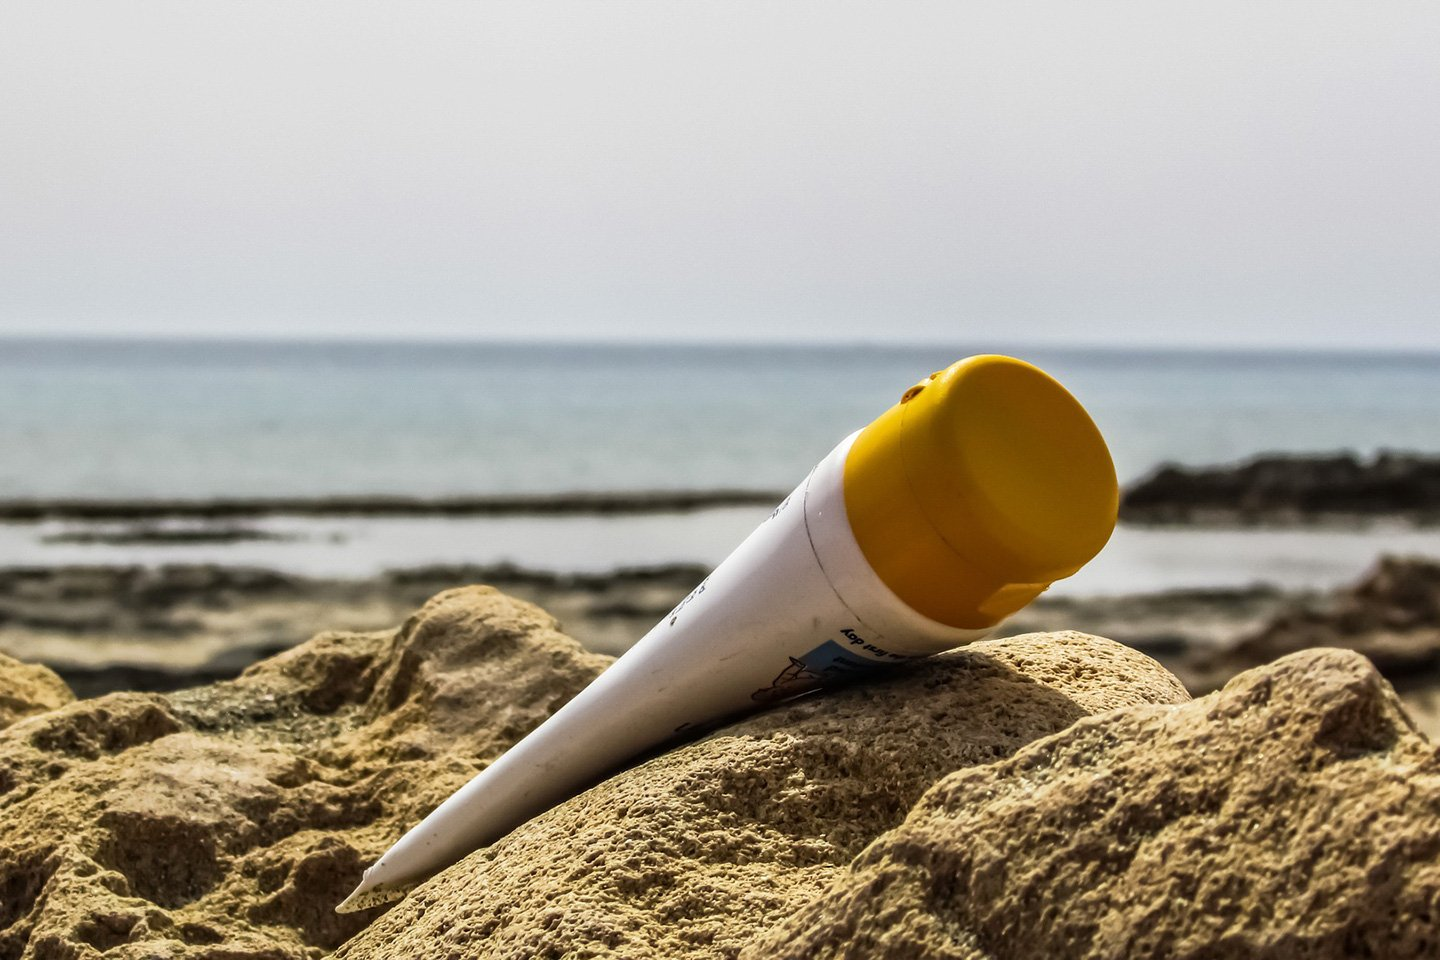 Sunscreen bottle in the sand at the beach